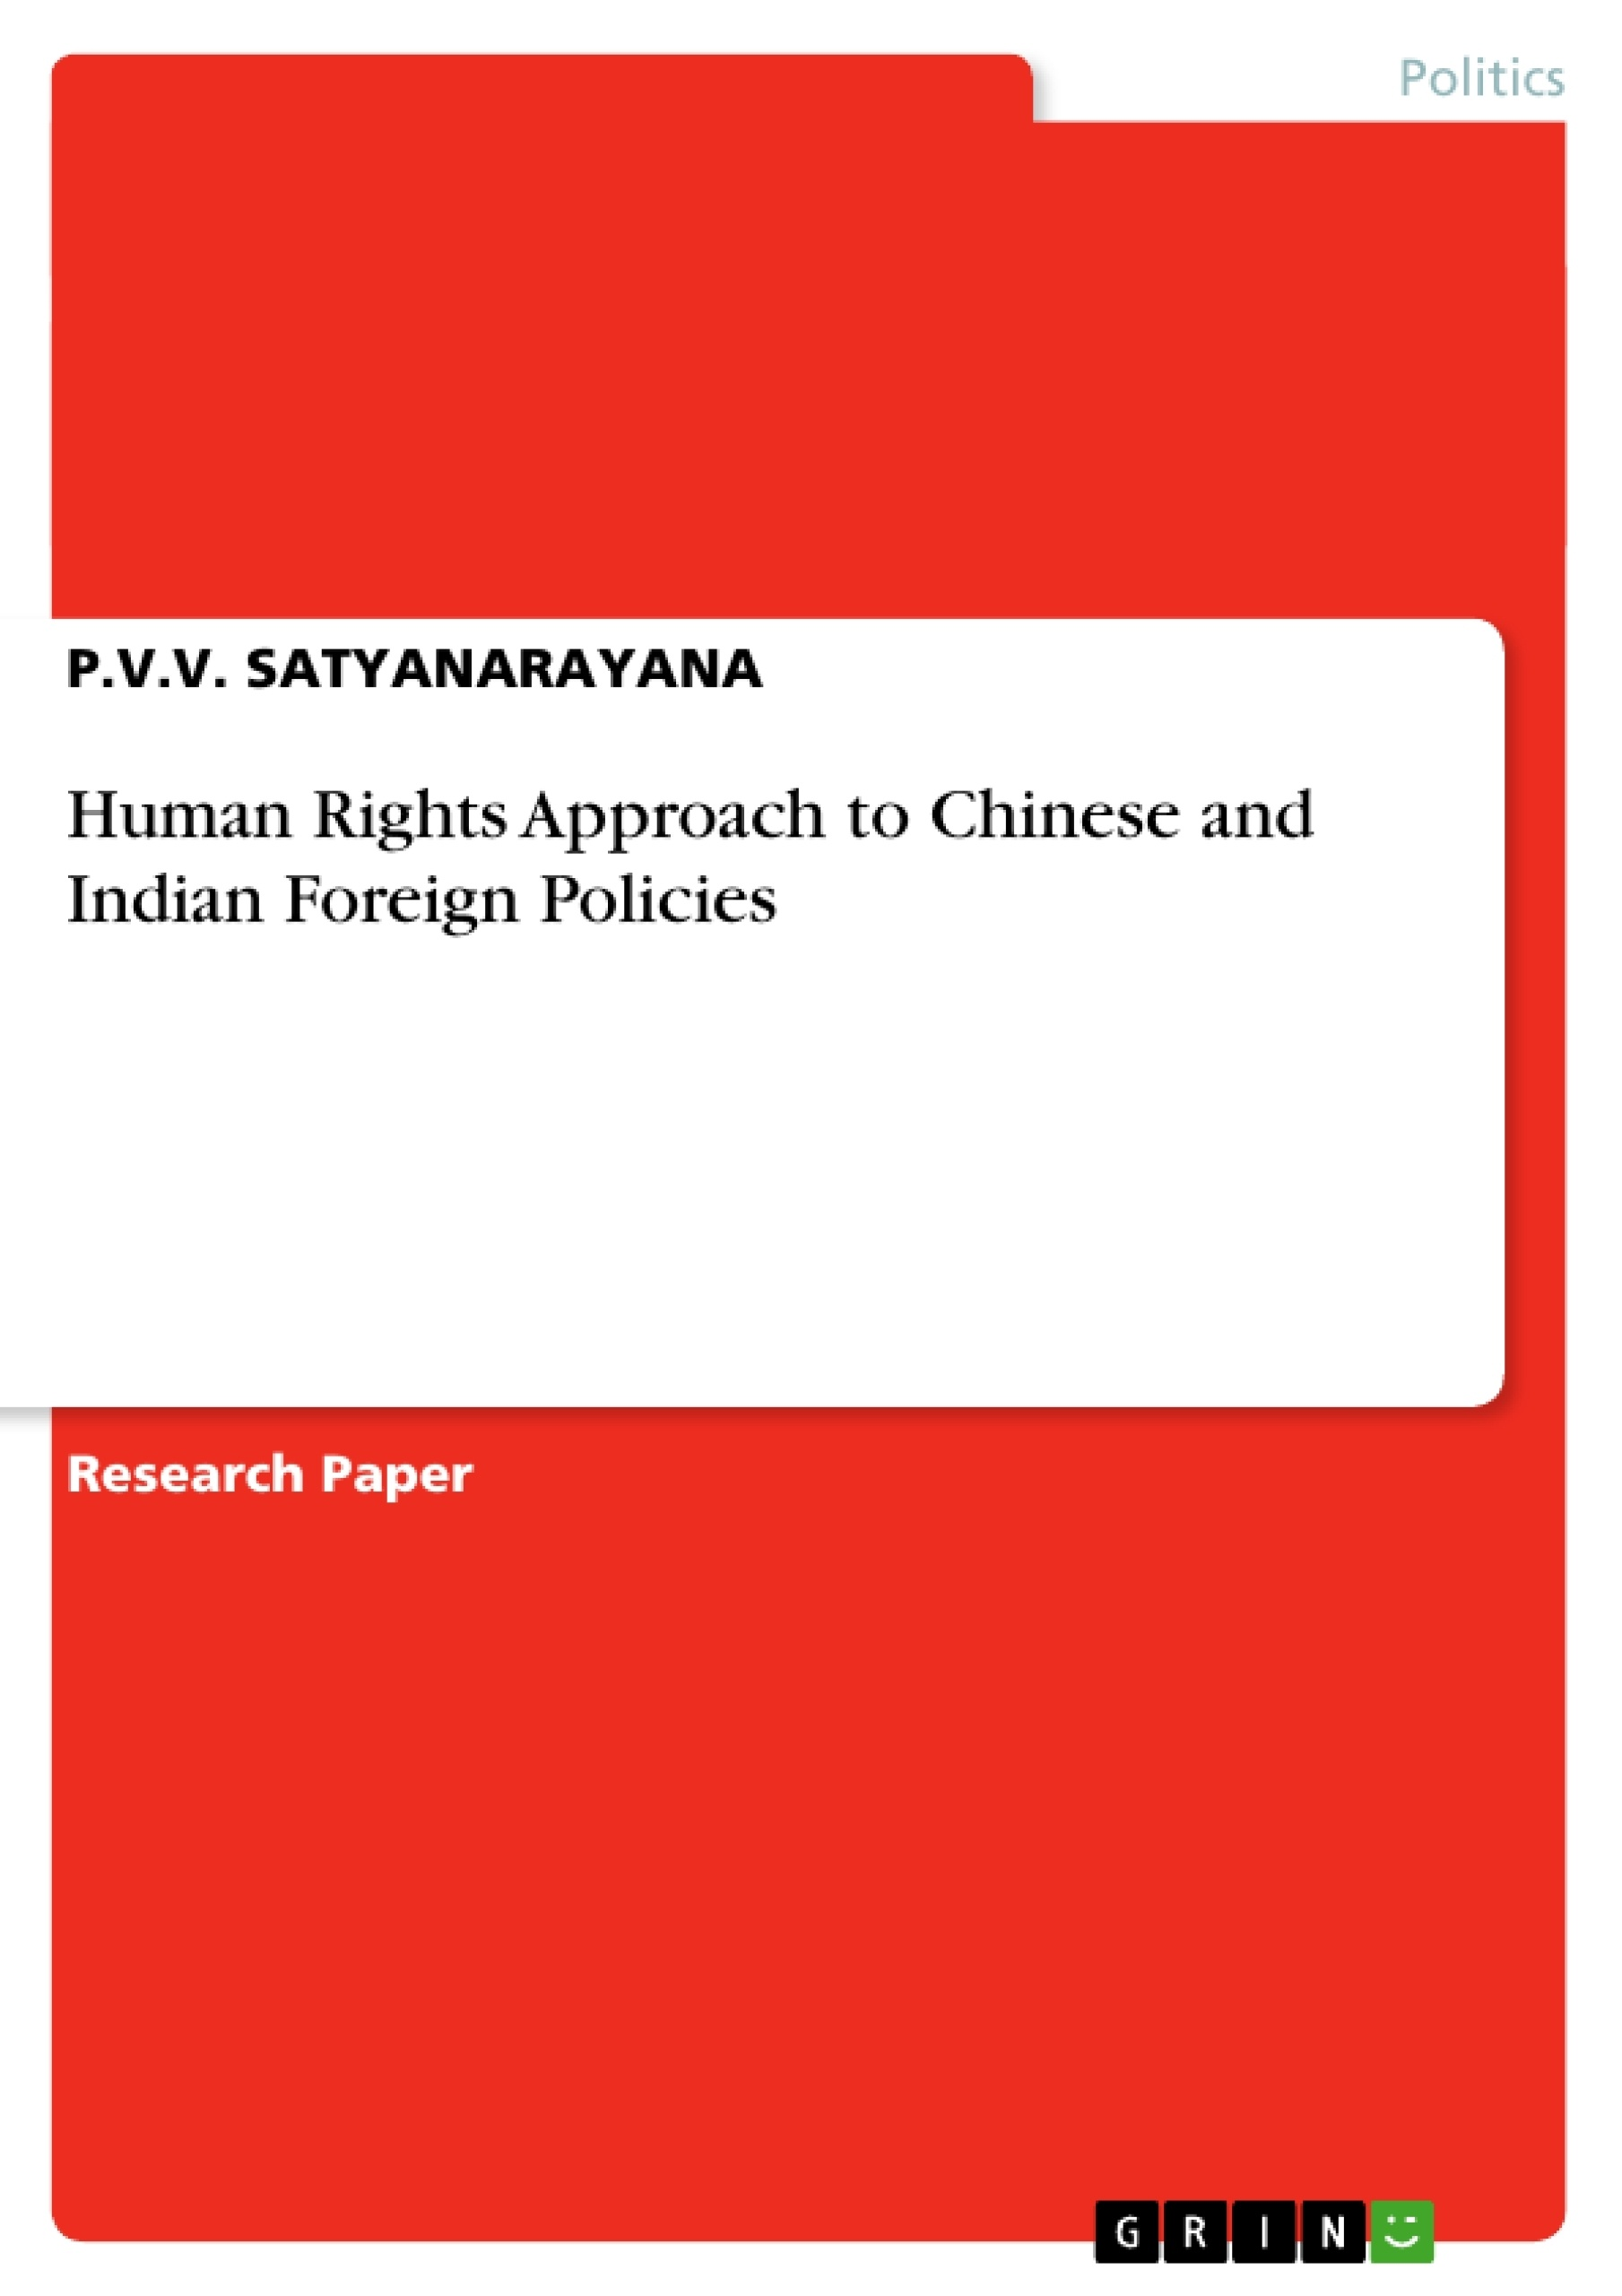 Title: Human Rights Approach to Chinese and Indian Foreign Policies